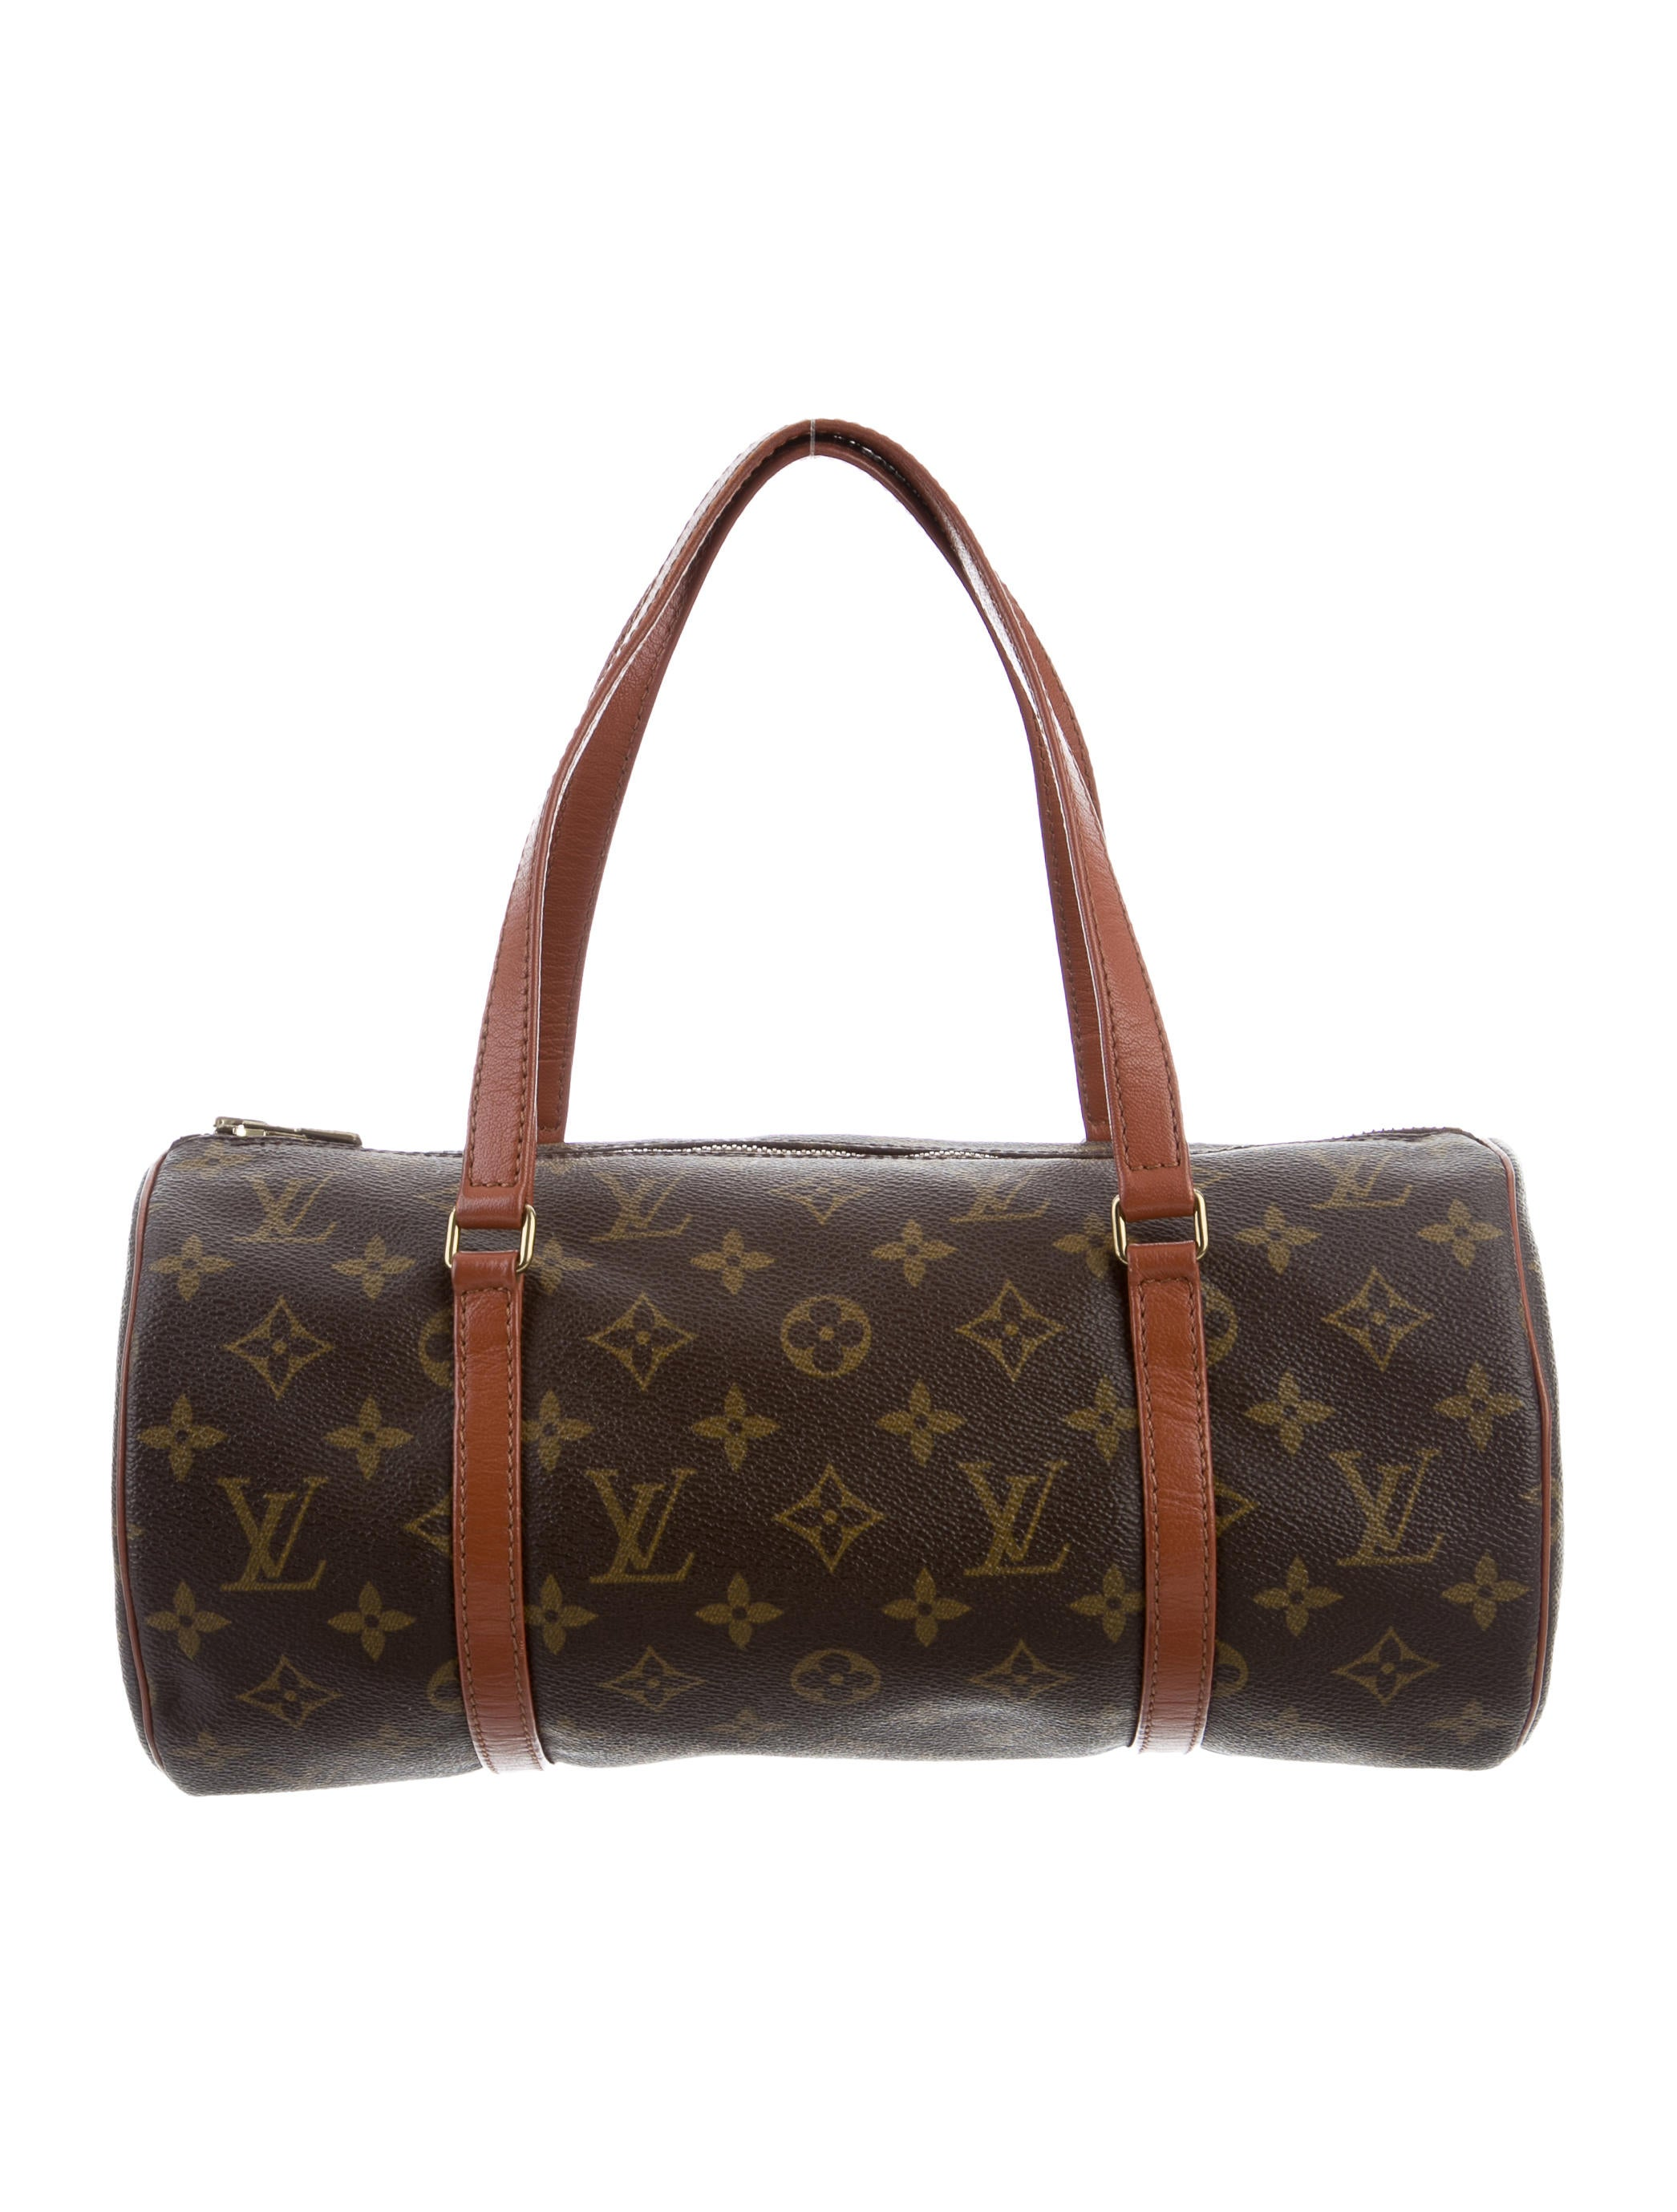 Louis Vuitton Papillon 30 Bag Handbags Lou120021 The